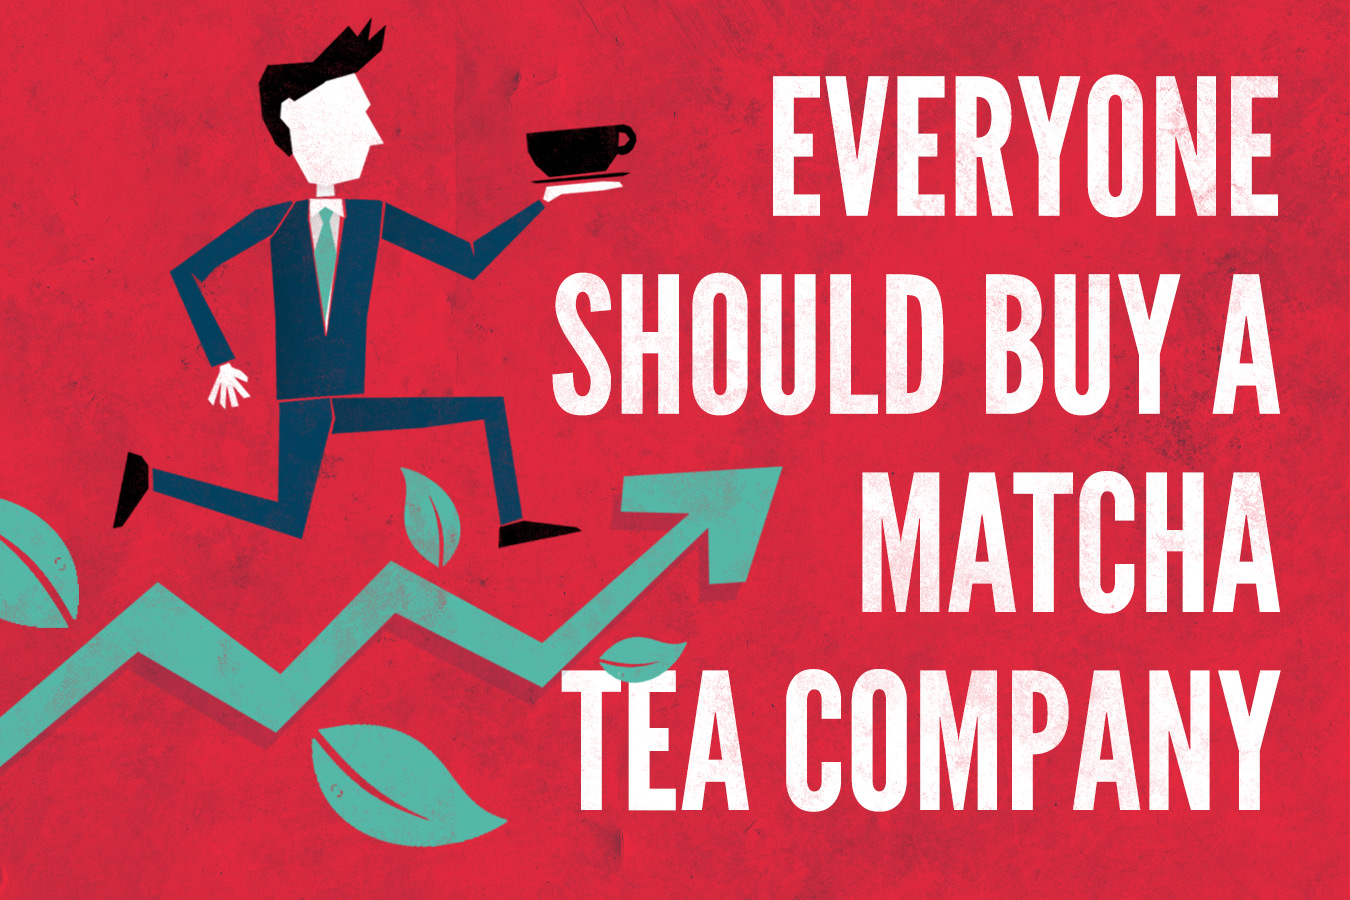 Why Everyone Should buy a Matcha Tea Company